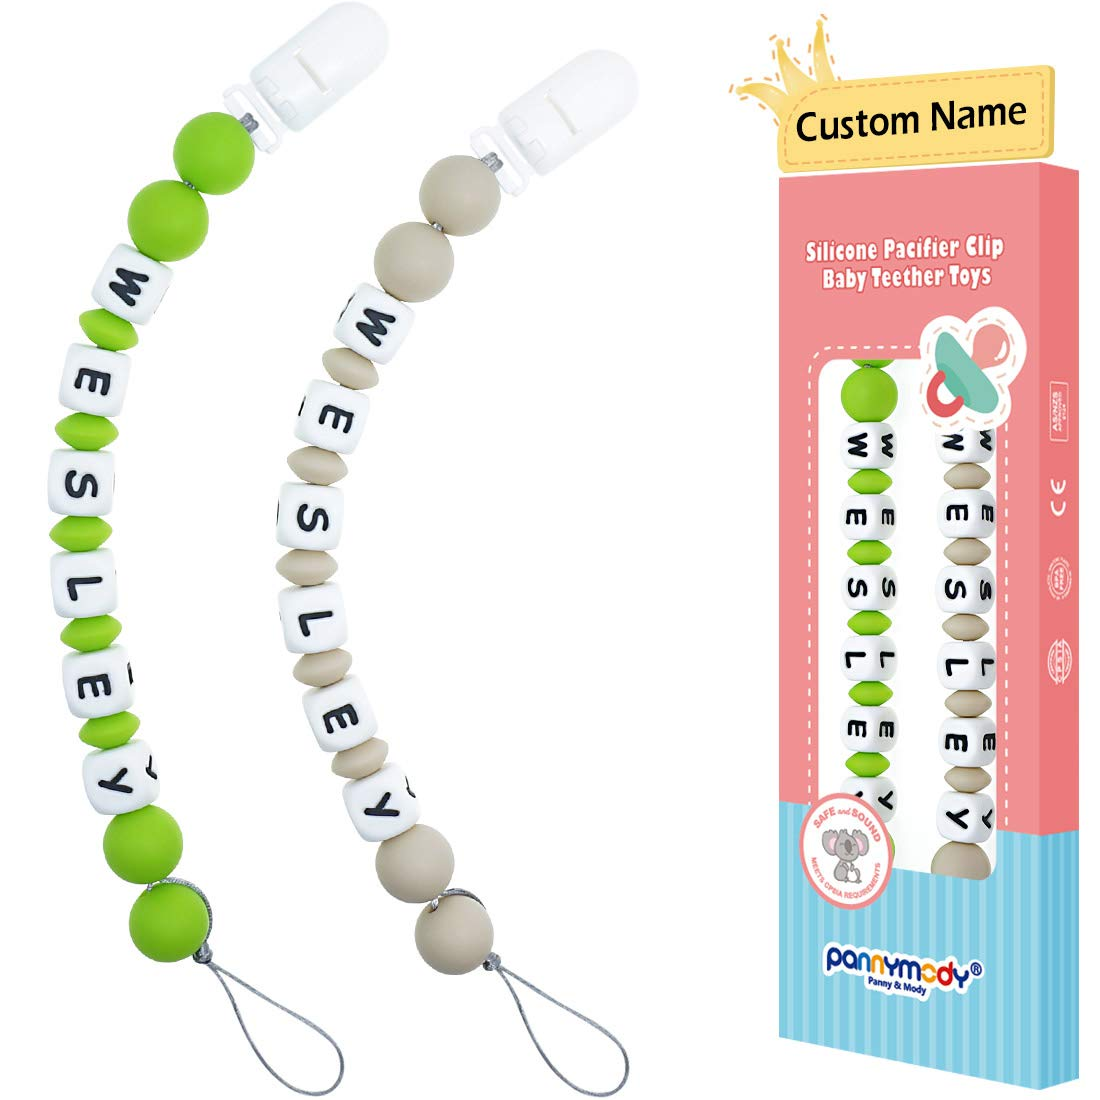 Panny & Mody Pacifier Clip Personalized Name, Custom Made Silicone Pacifier Clip with Name, Bite Beads Universal Soother Clip Teether Chew Toy Beads for Day Care Baby Shower Gift - 2 in 1